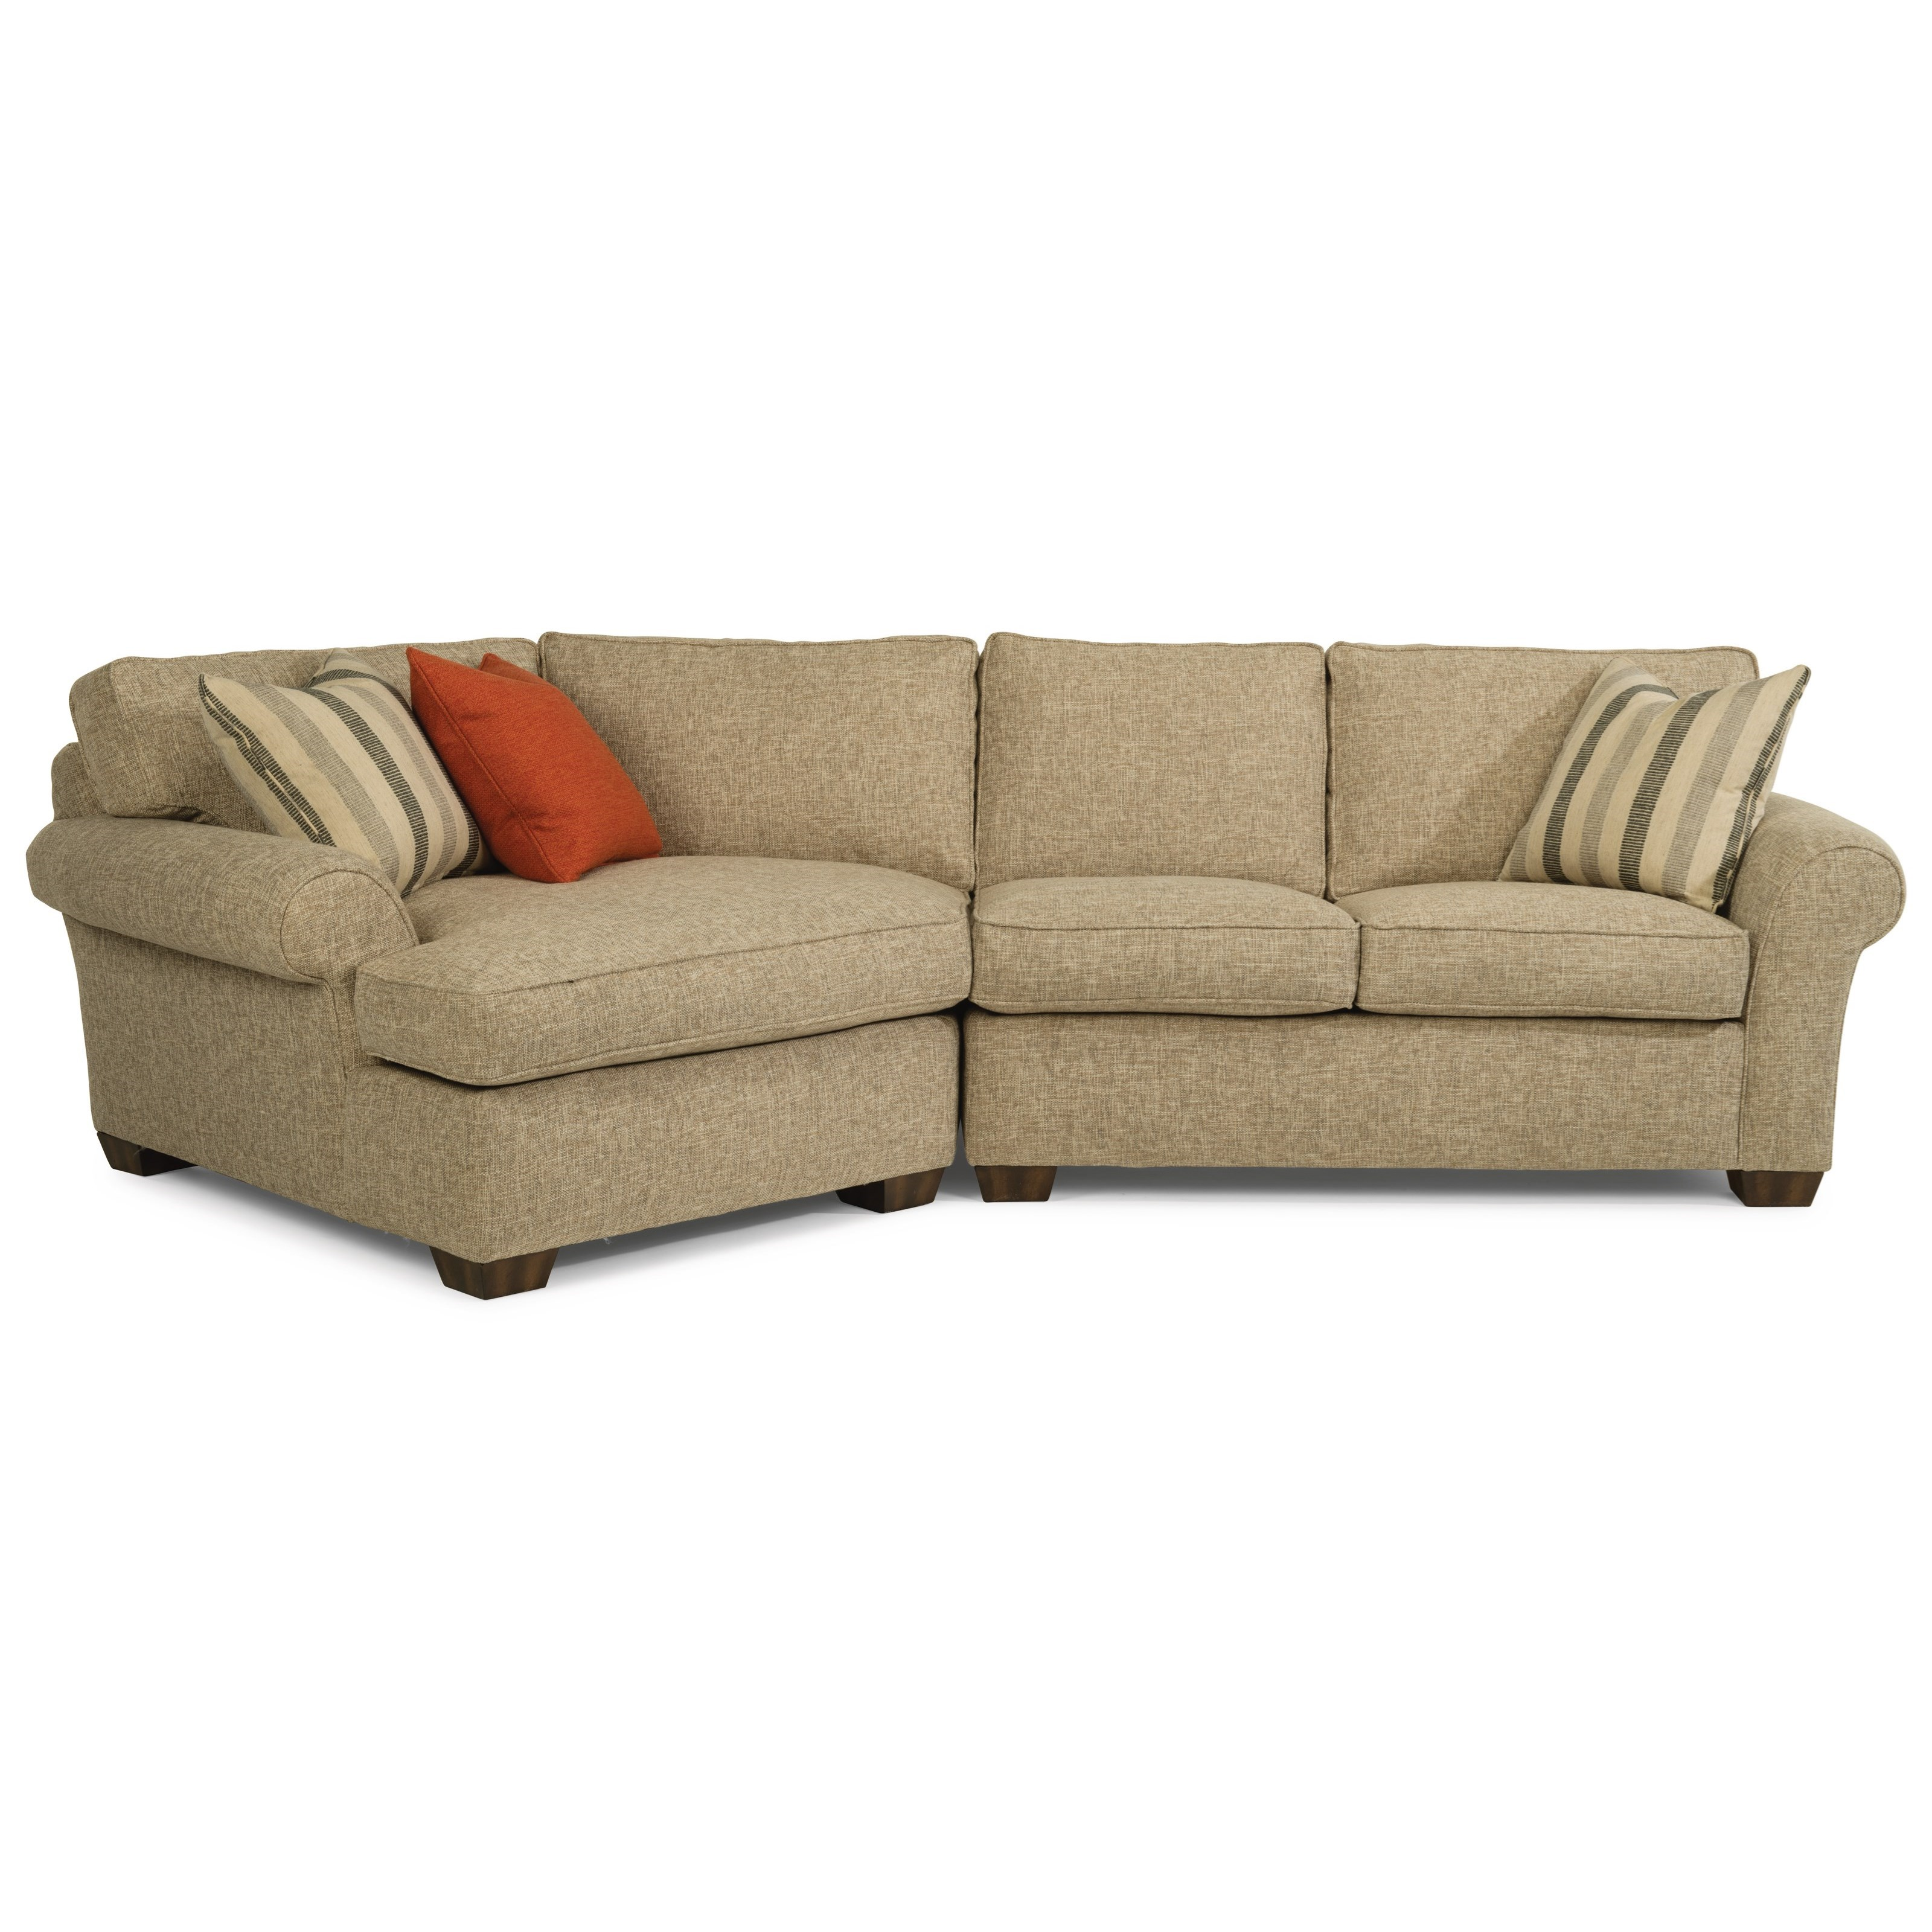 Vail 2-Piece Sectional with LAF Angled Chaise by Flexsteel at Jordan's Home Furnishings